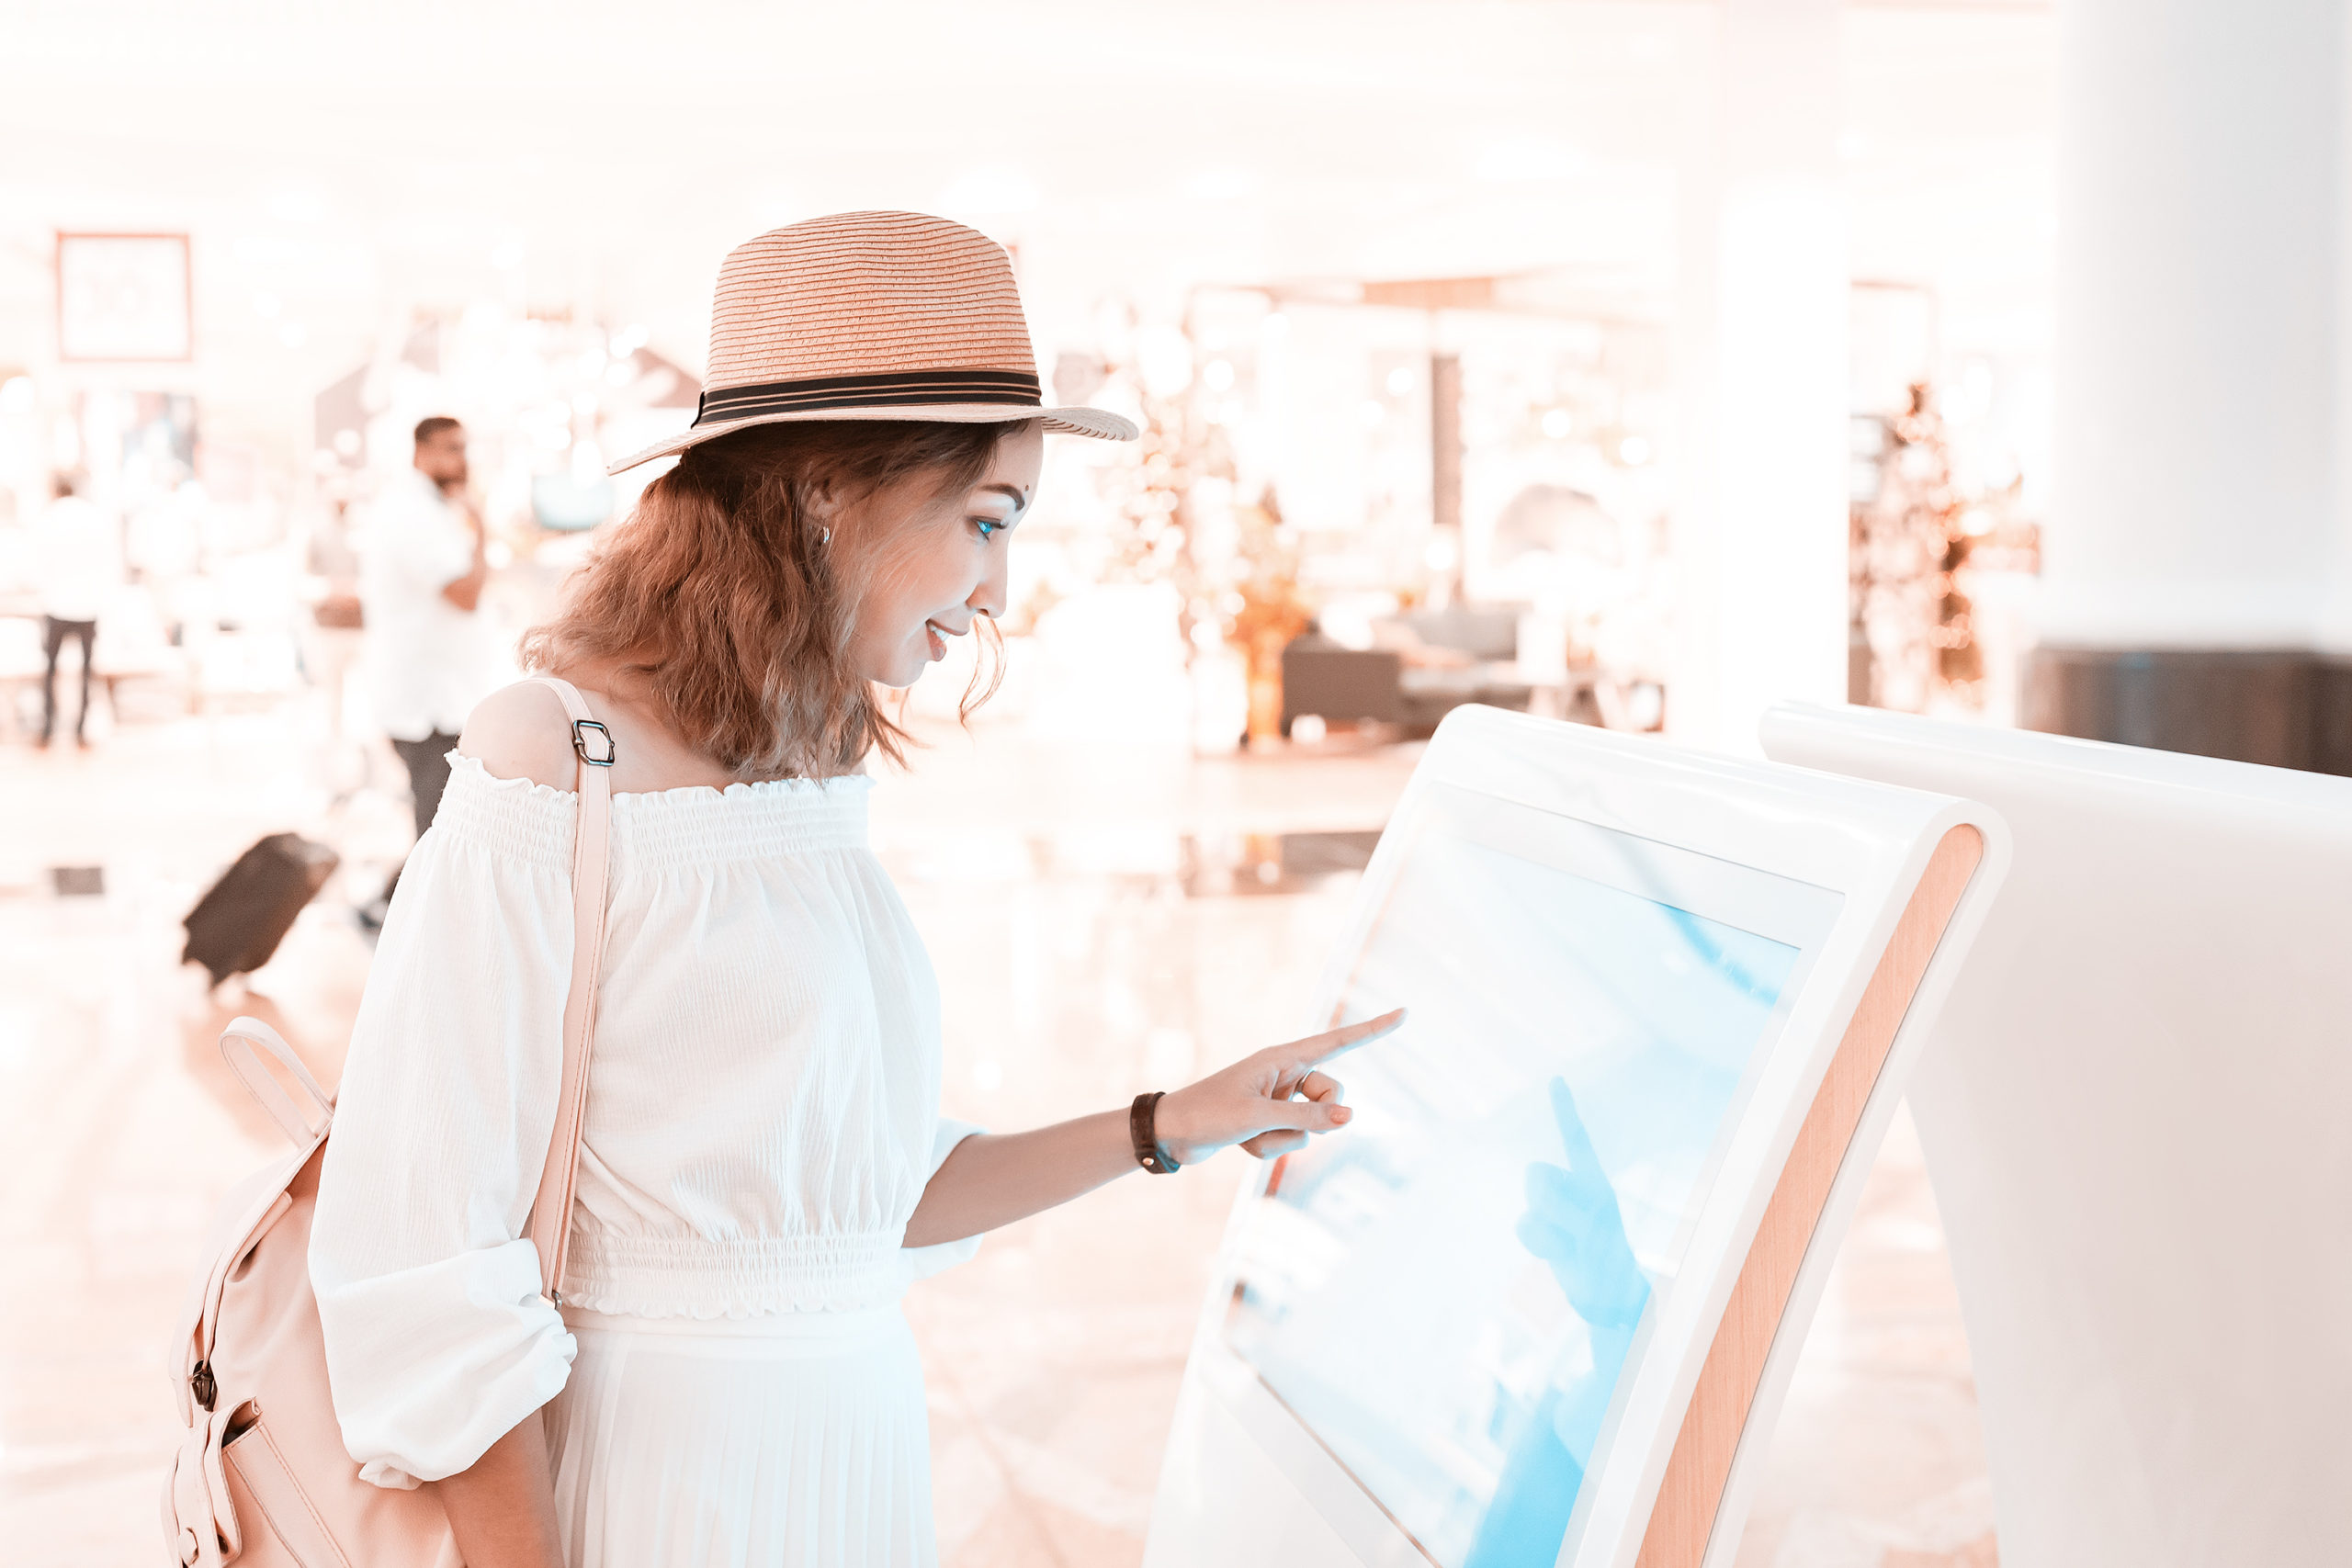 commercial-and-hospitality-Design-by-MDfx-woman-wearing-white-using-digital-kiosk